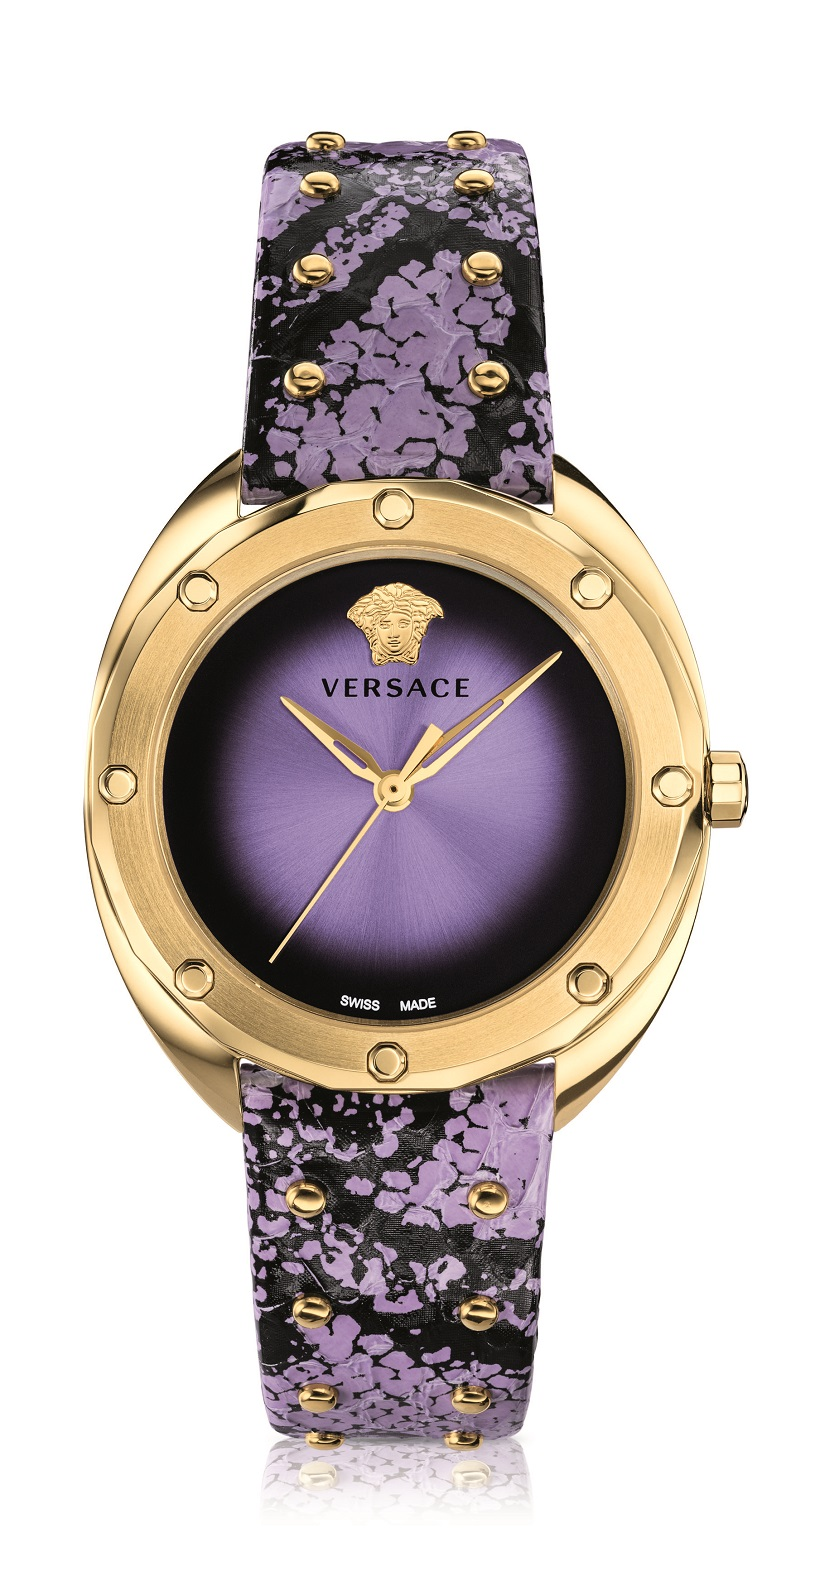 Shadov, The Fierce Timepiece By Versace